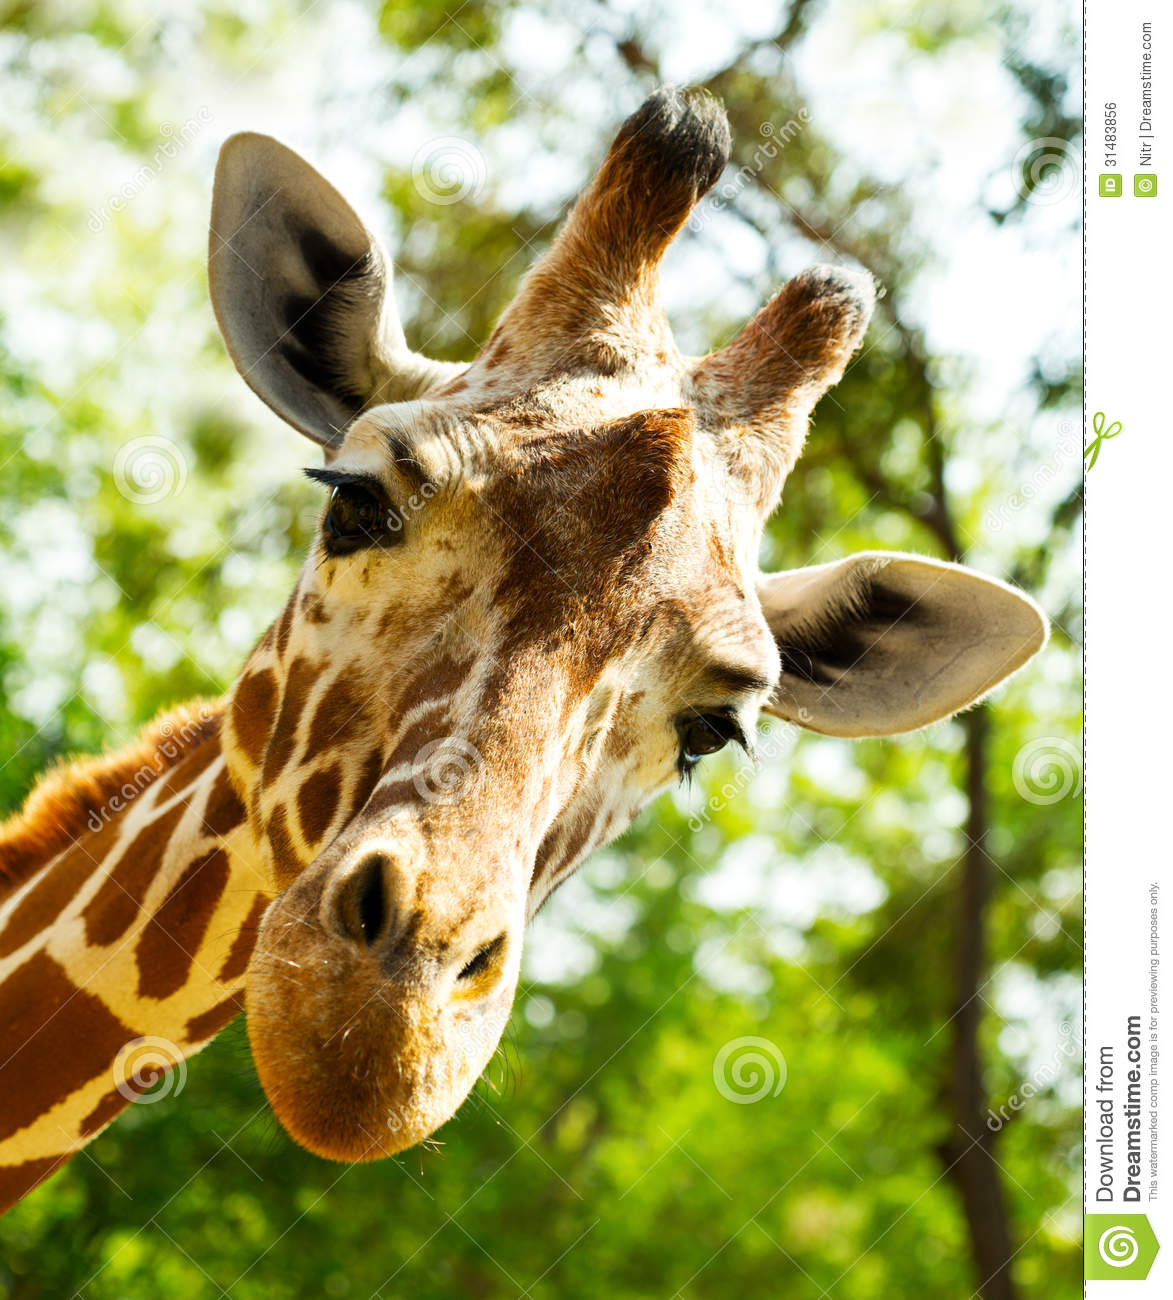 Giraffe head close up - photo#10